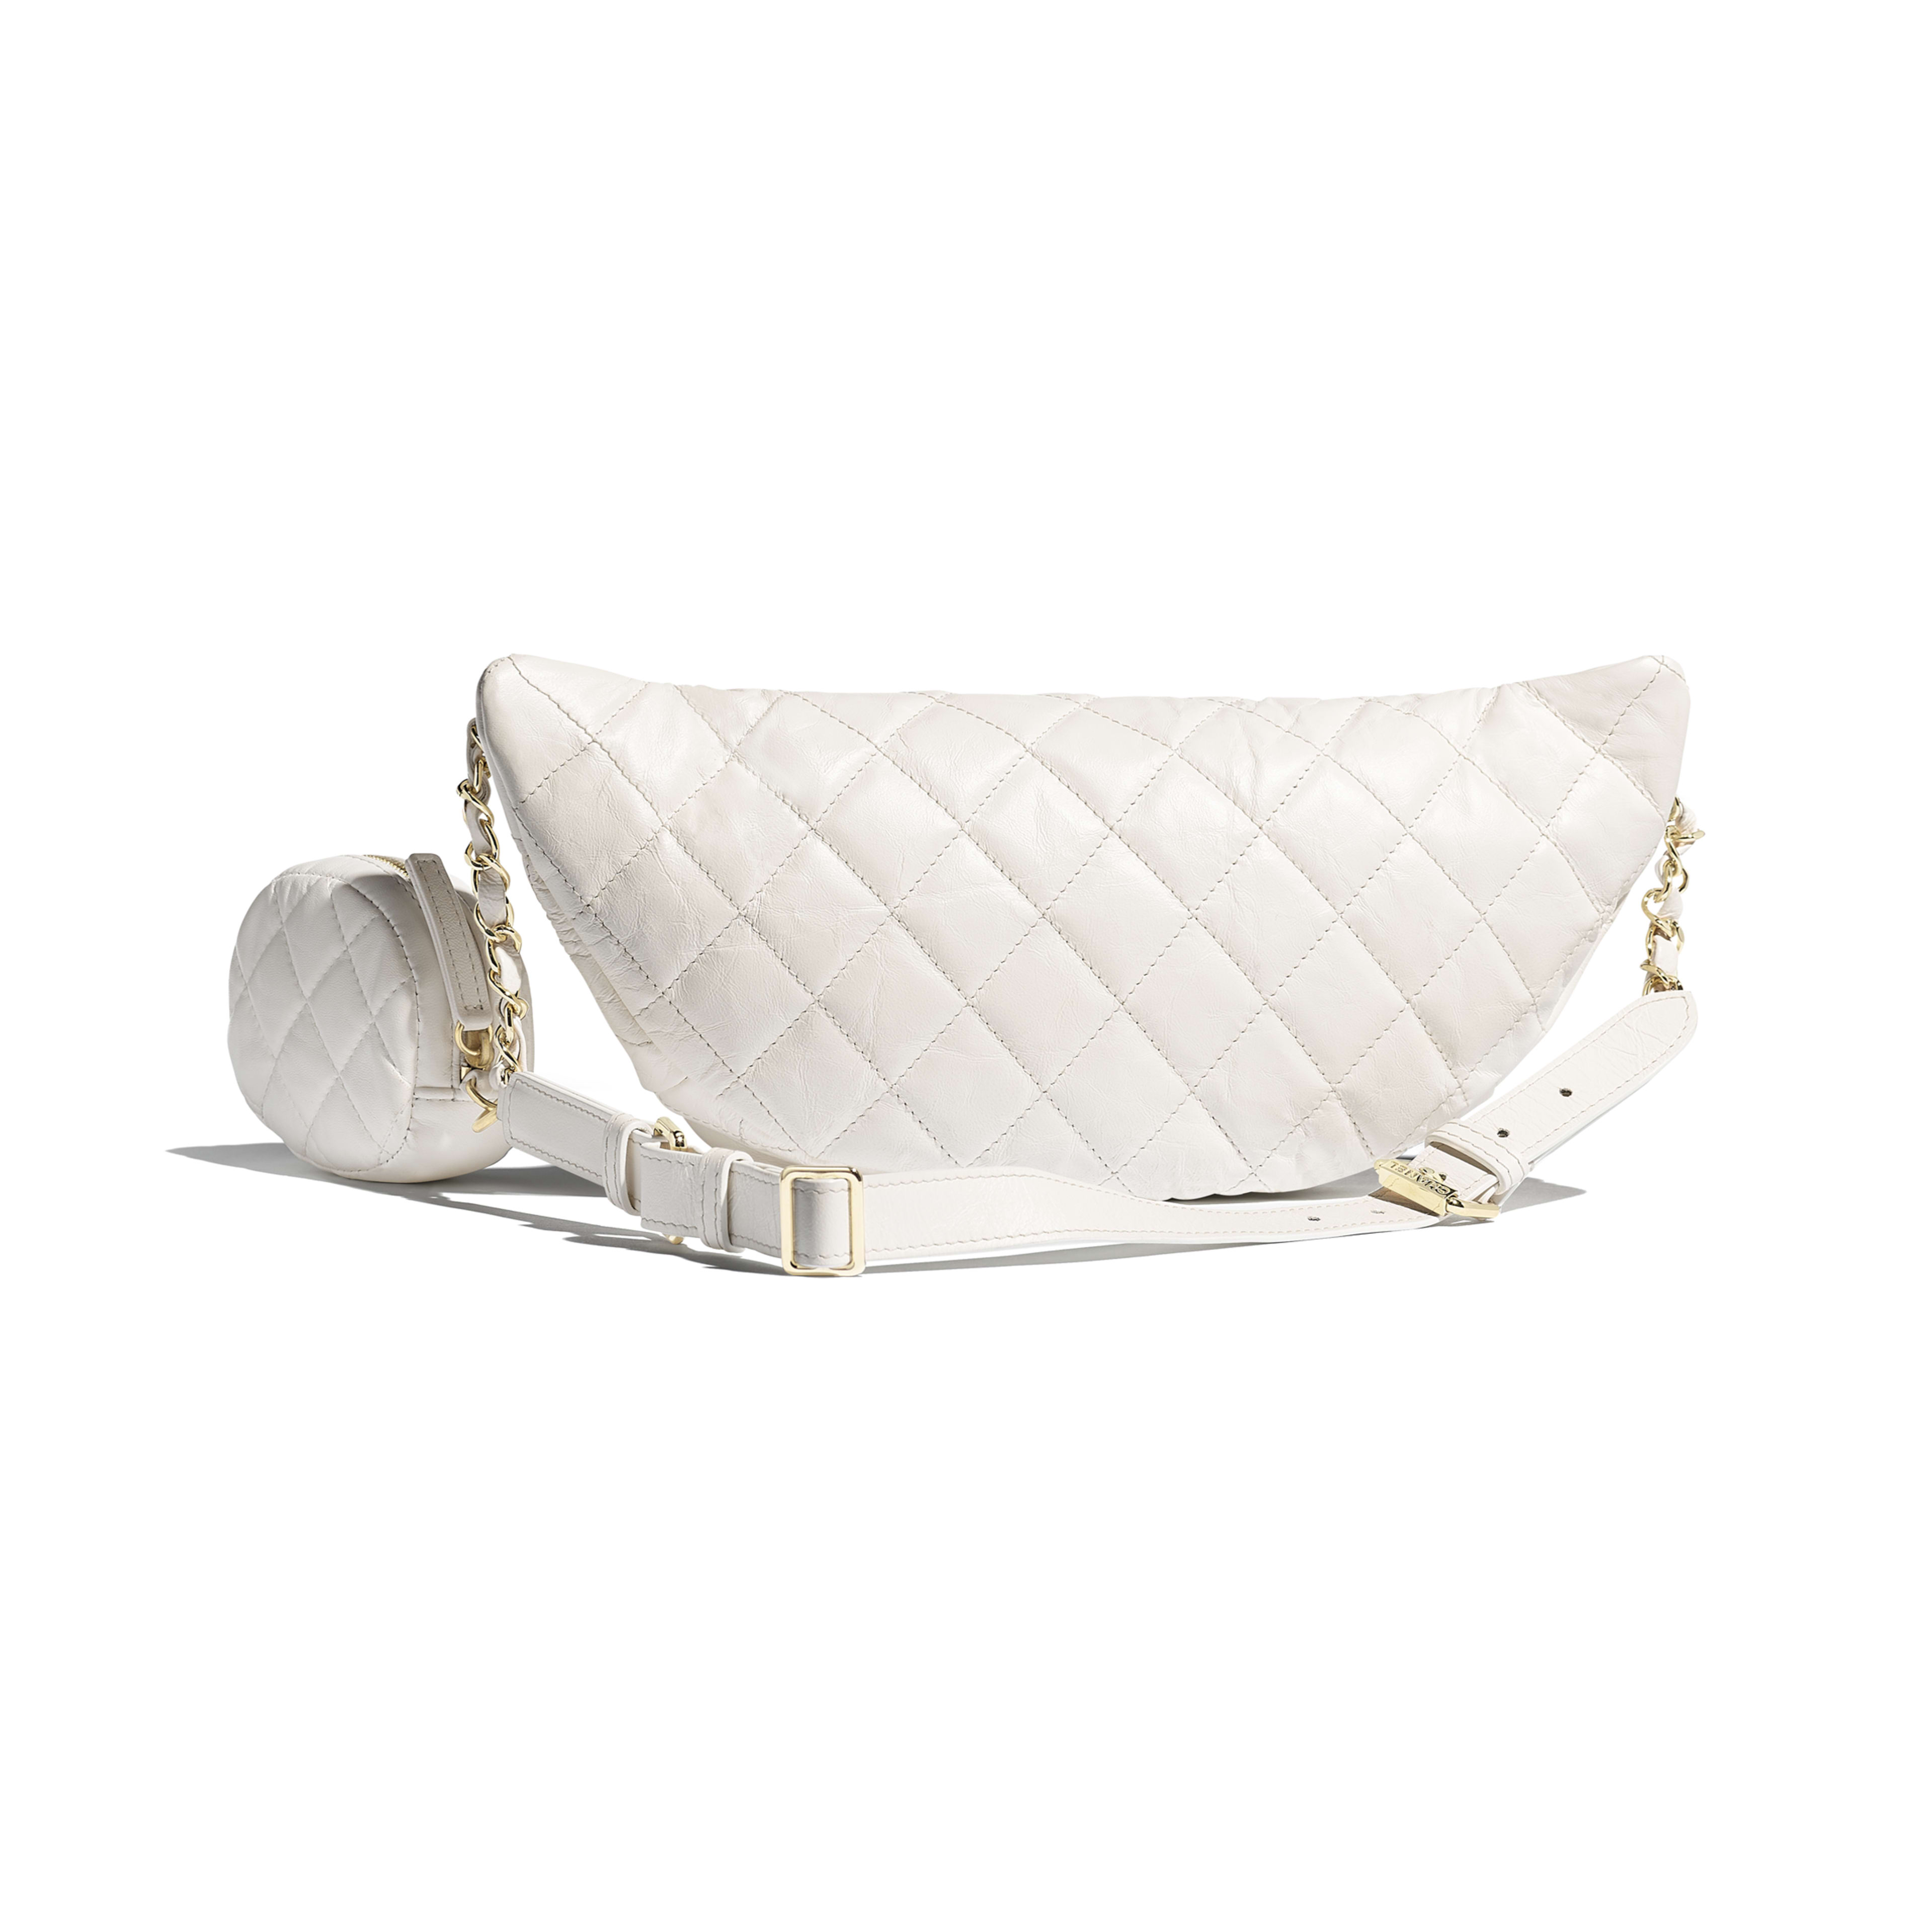 Waist Bag & Coin Purse - White - Aged Calfskin & Gold-Tone Metal - Alternative view - see full sized version